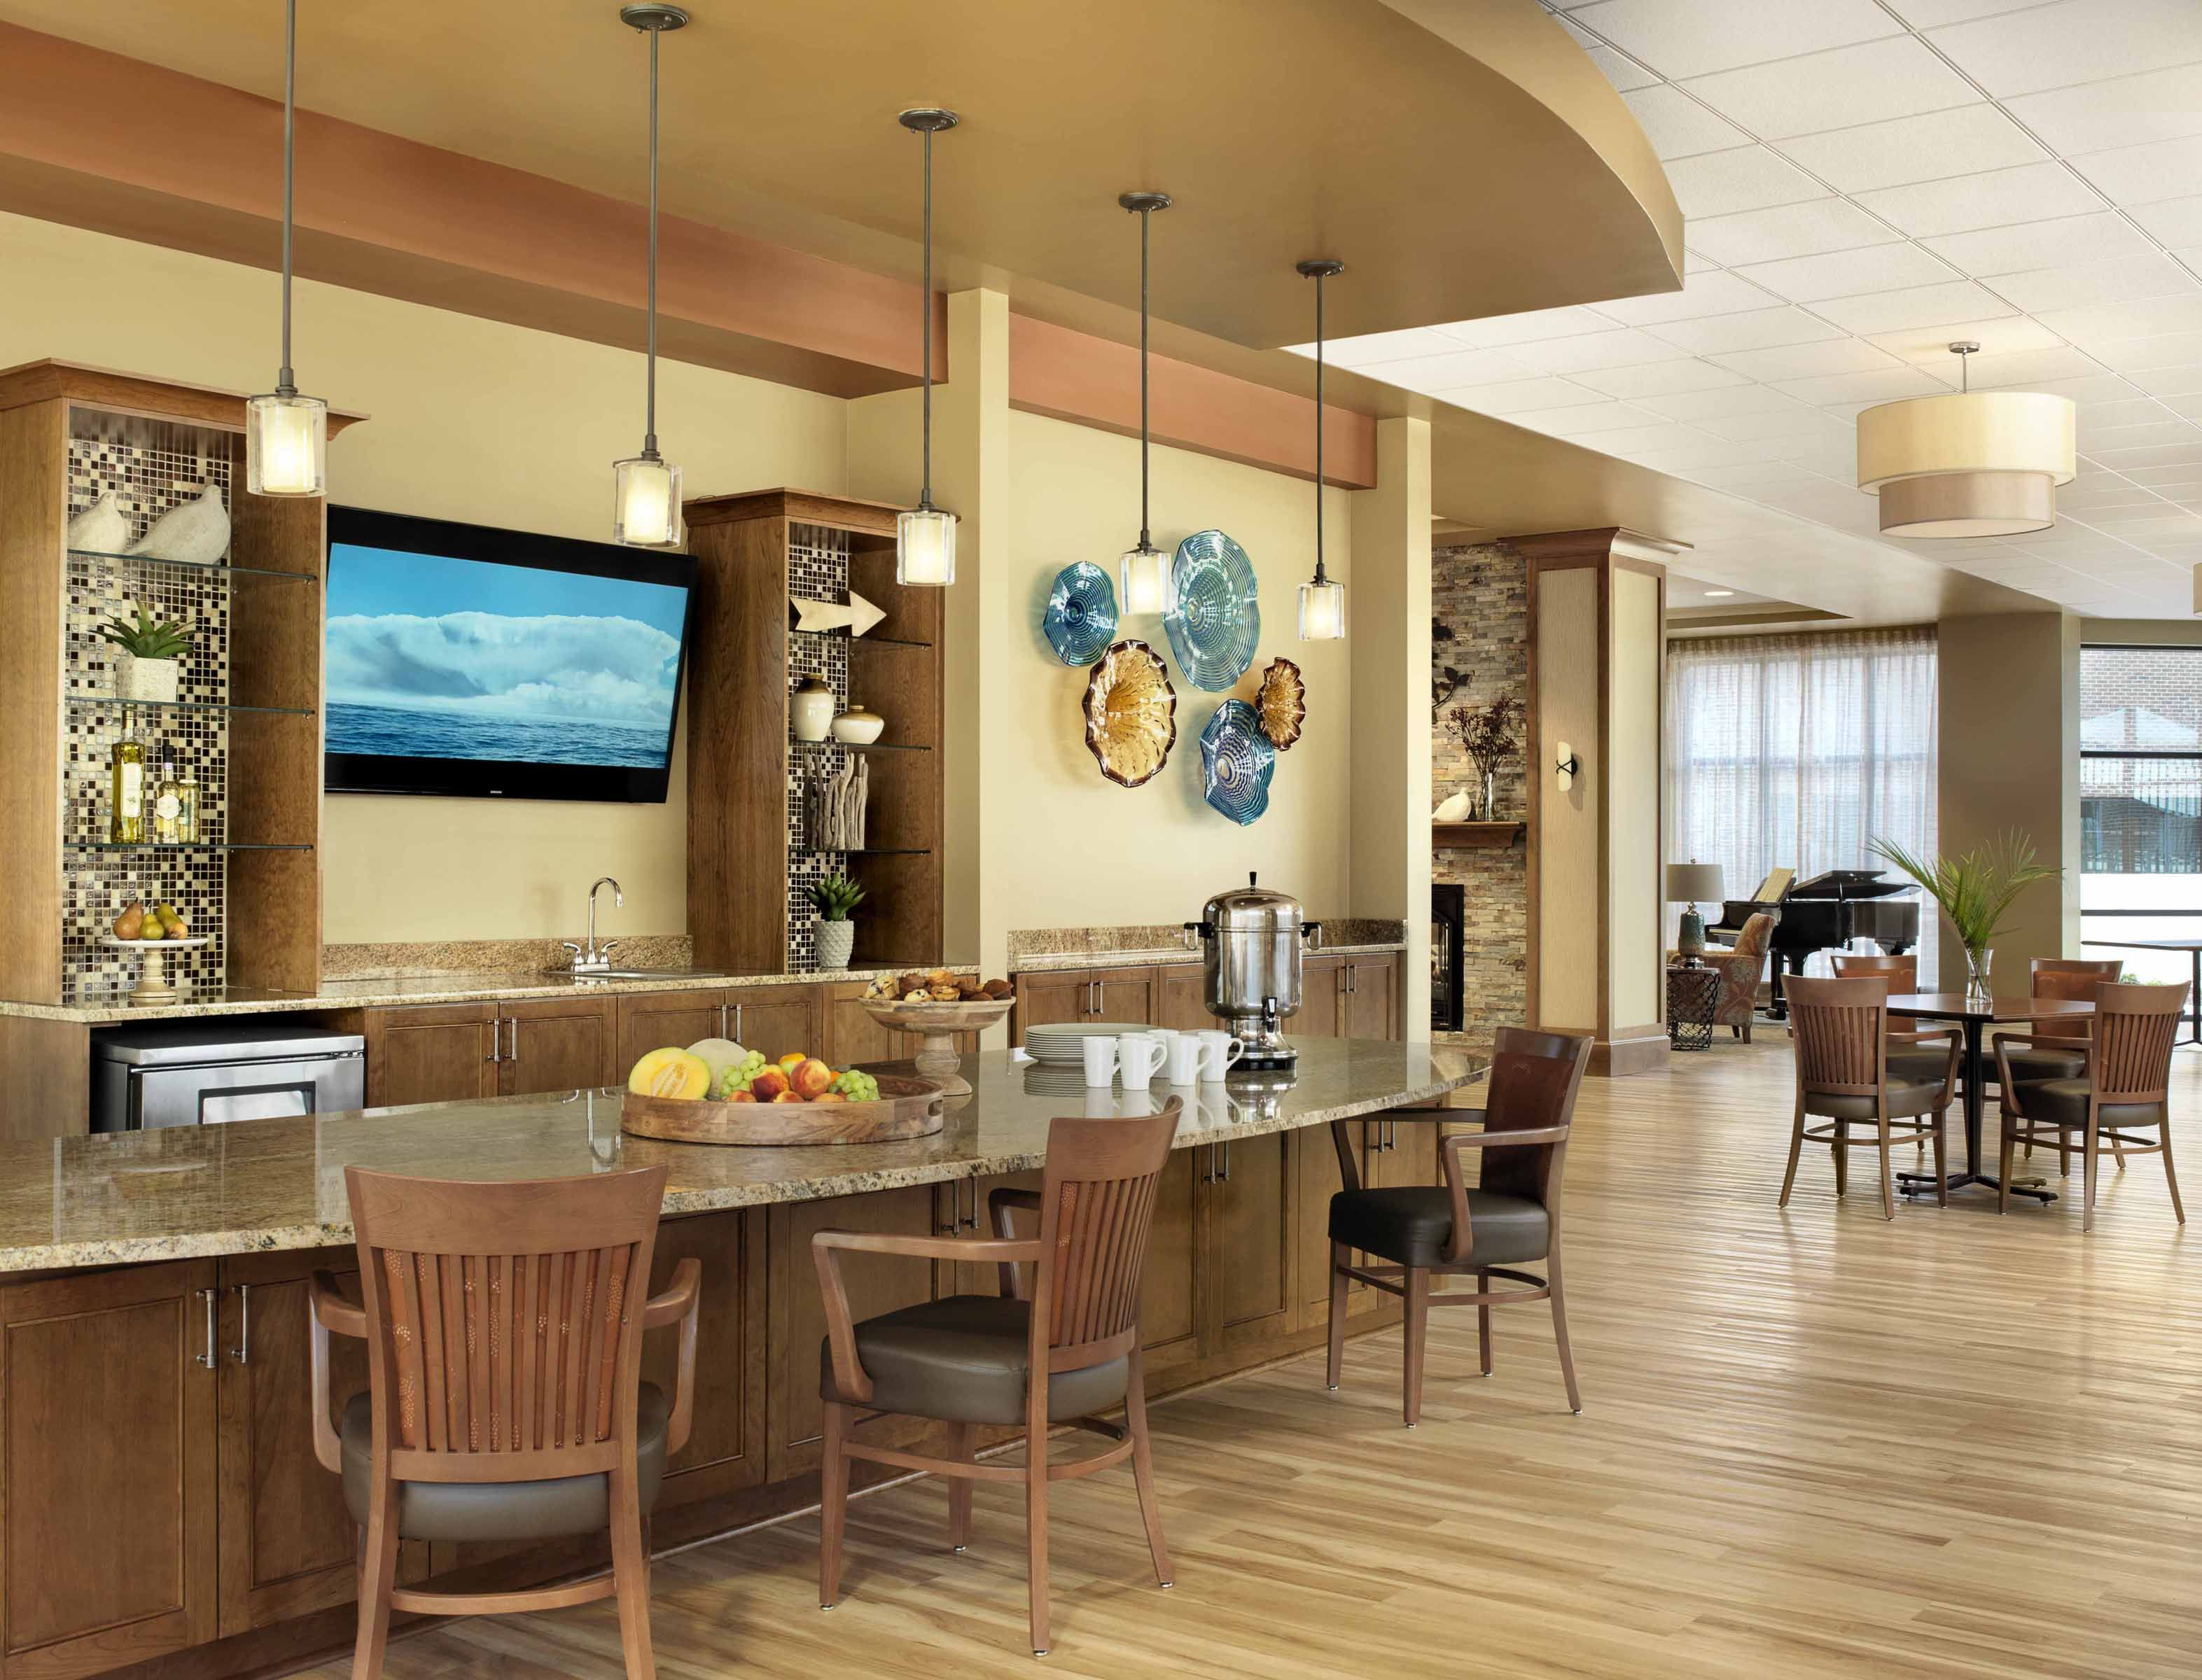 Senior Living Furniture Style Delectable Cypress Glen Cafe Glass Artwork  Senior Living Interior Design . Design Ideas